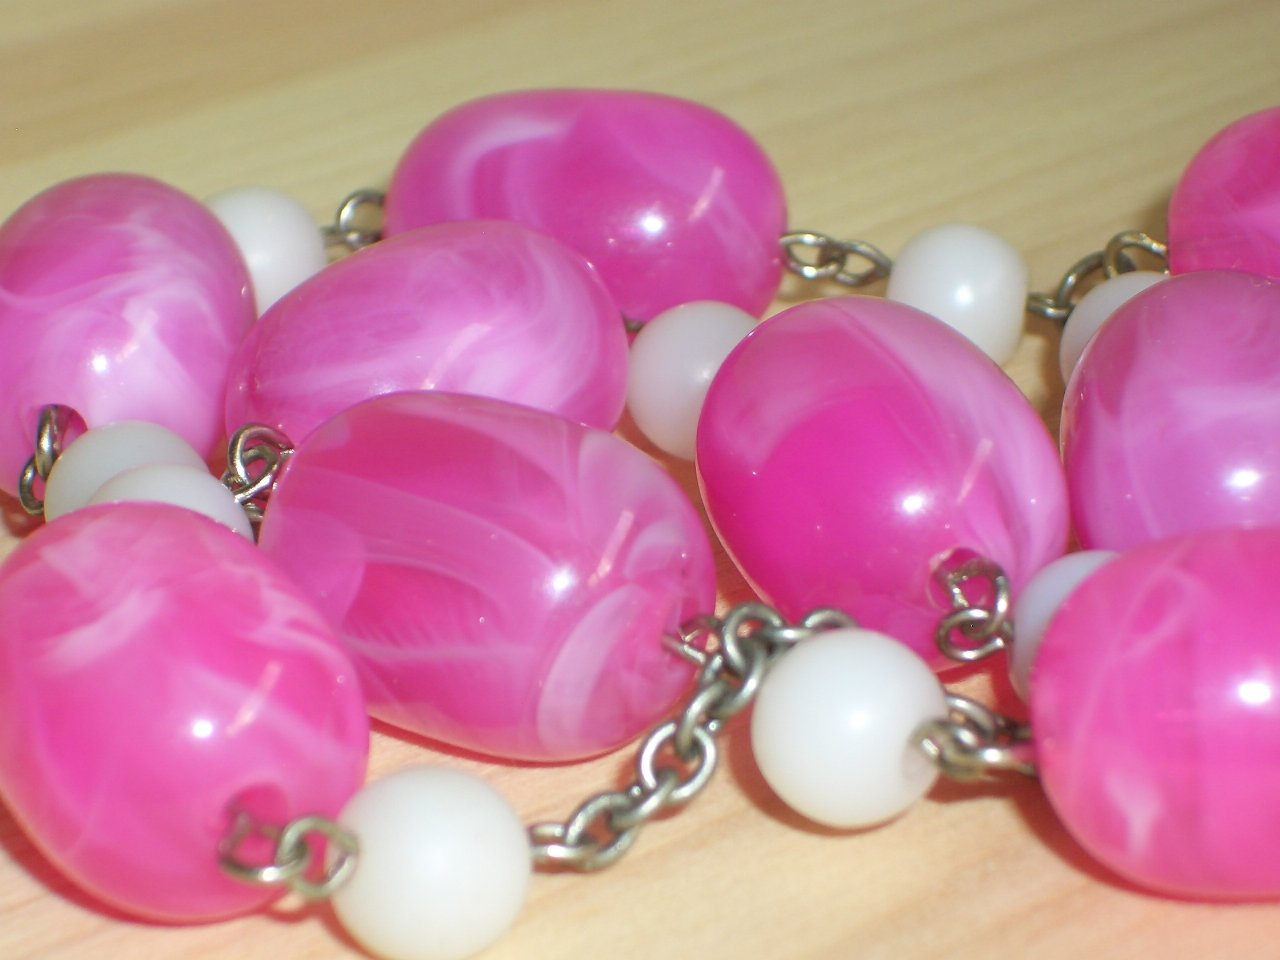 Bubblegum Cotton Candy Matinee Necklace Lovely Ladylike Pink White Oblong Round Beads Pendant